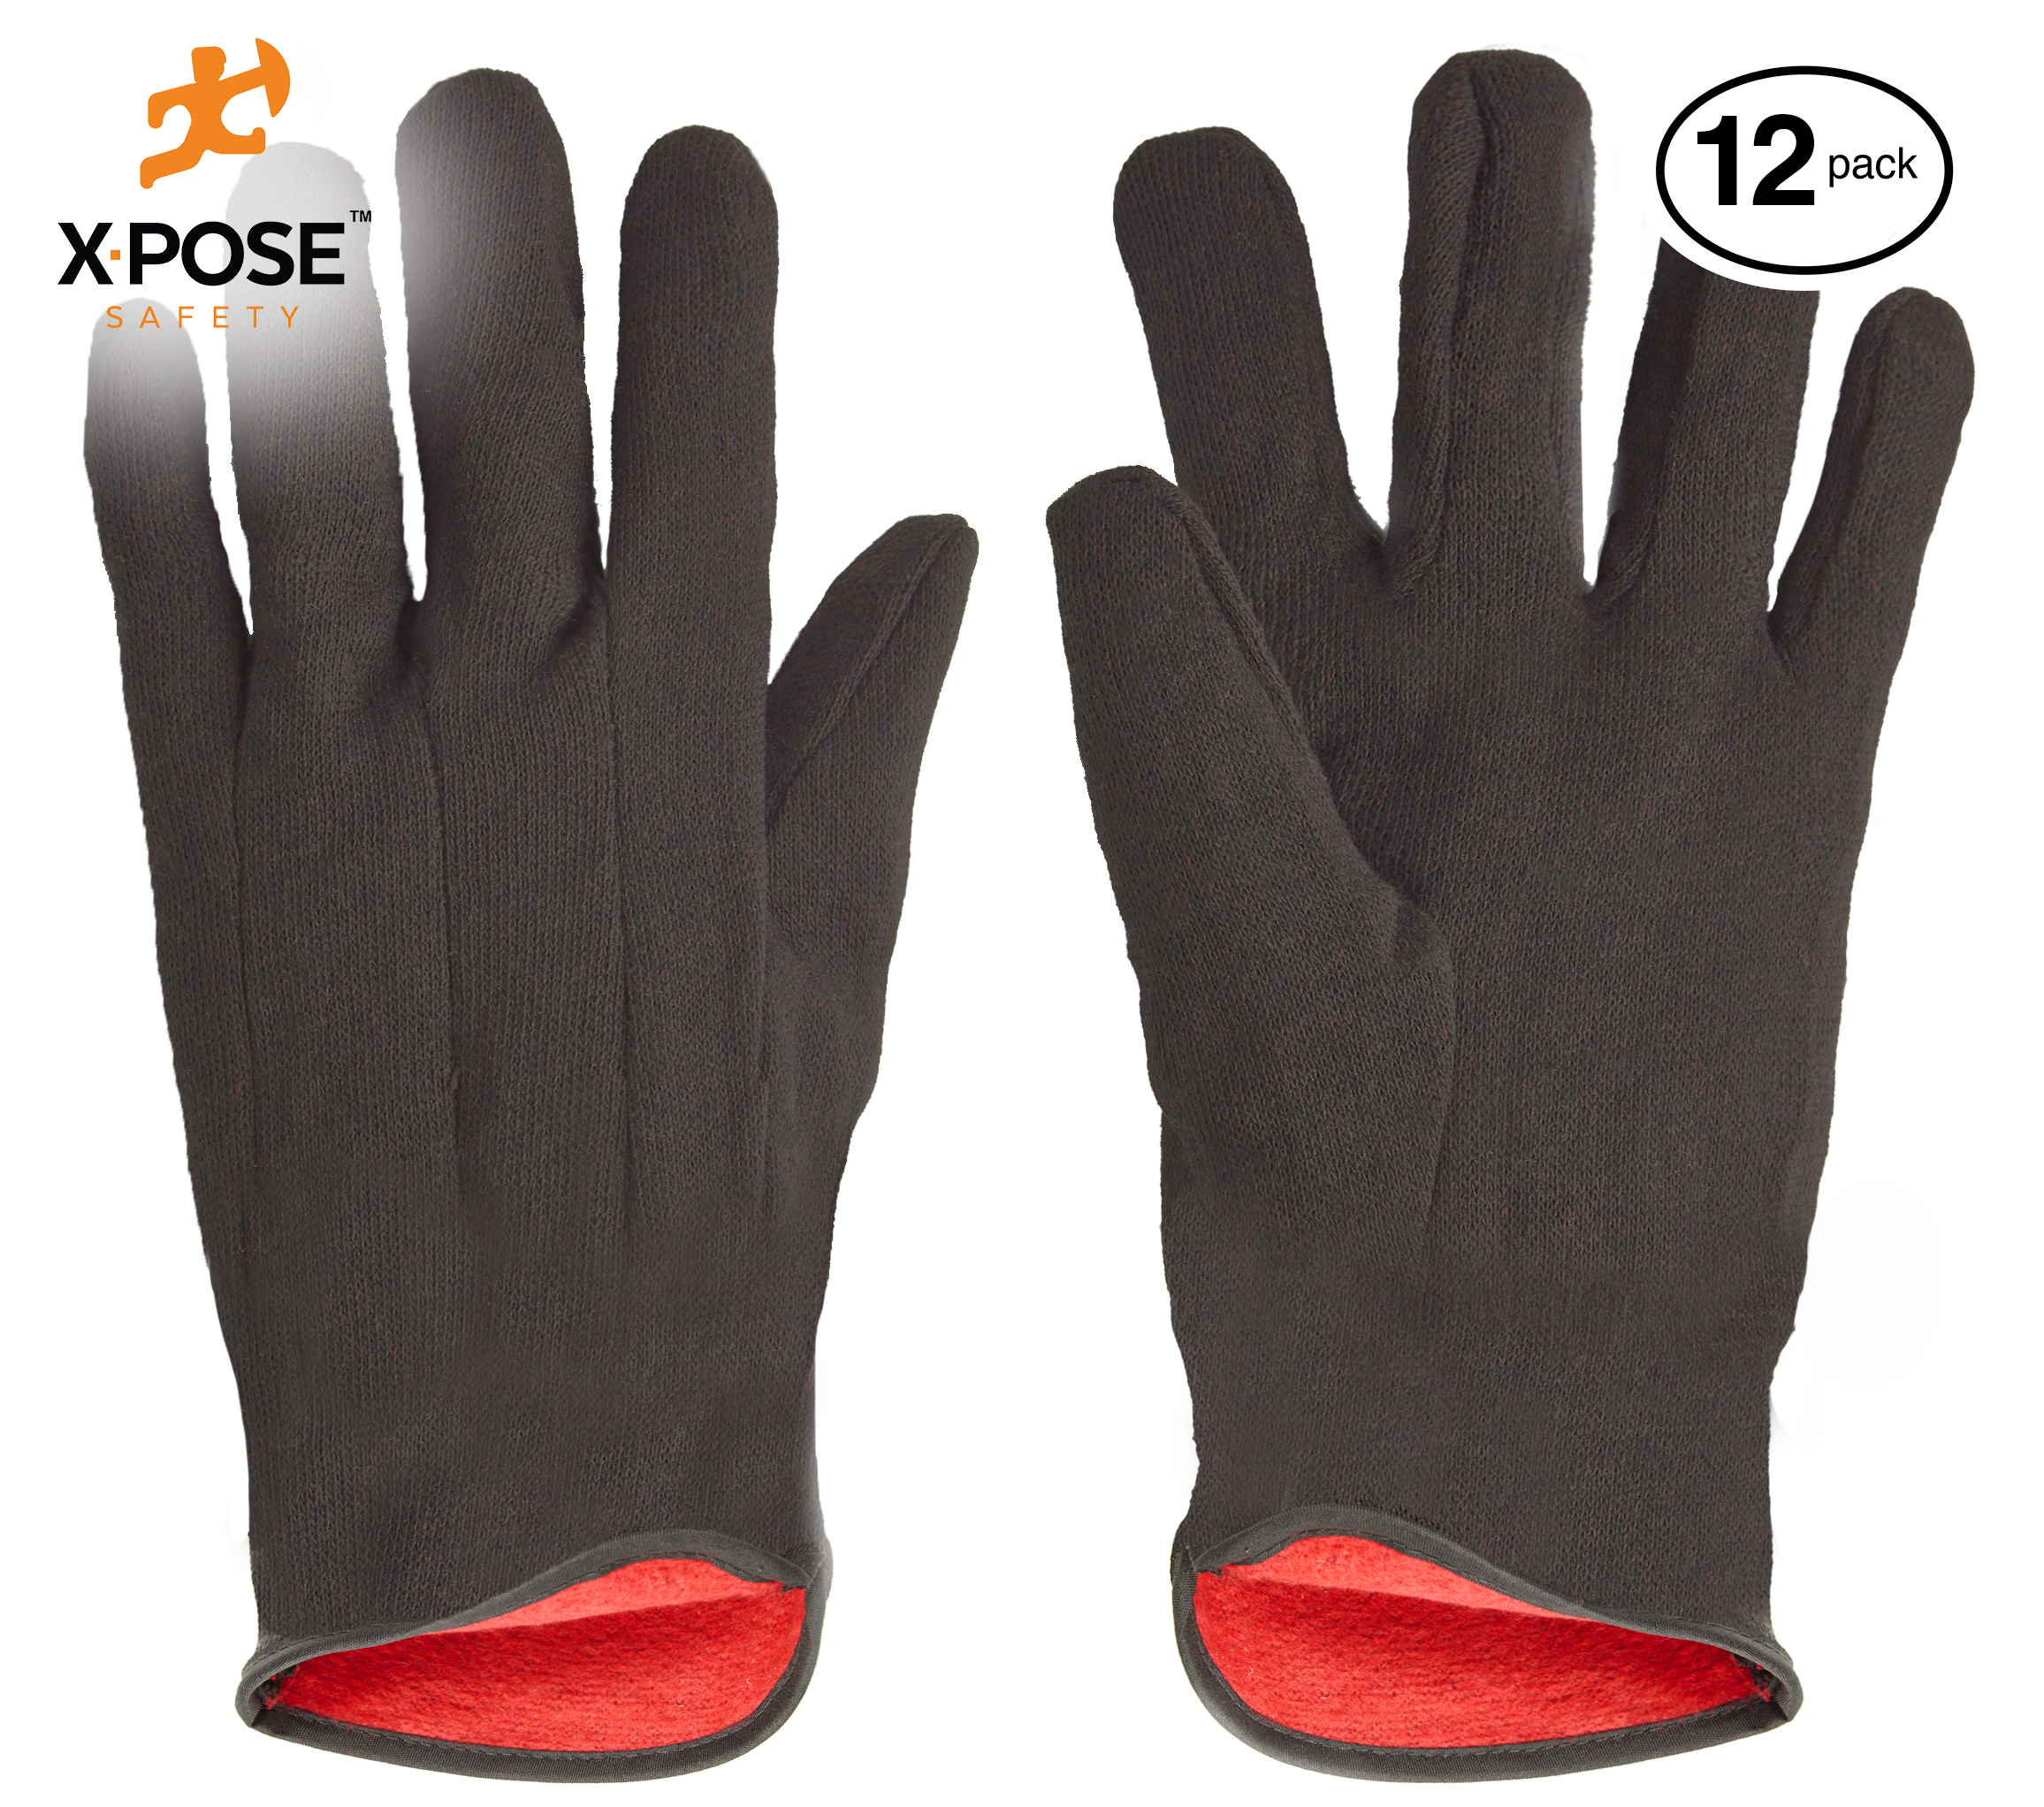 Protective Work Gloves - 12 Pack For Industrial Labor, Home and Gardening 100% 14 oz Cotton, Red Fleece Lining - Men's Large - Brown RL-1400